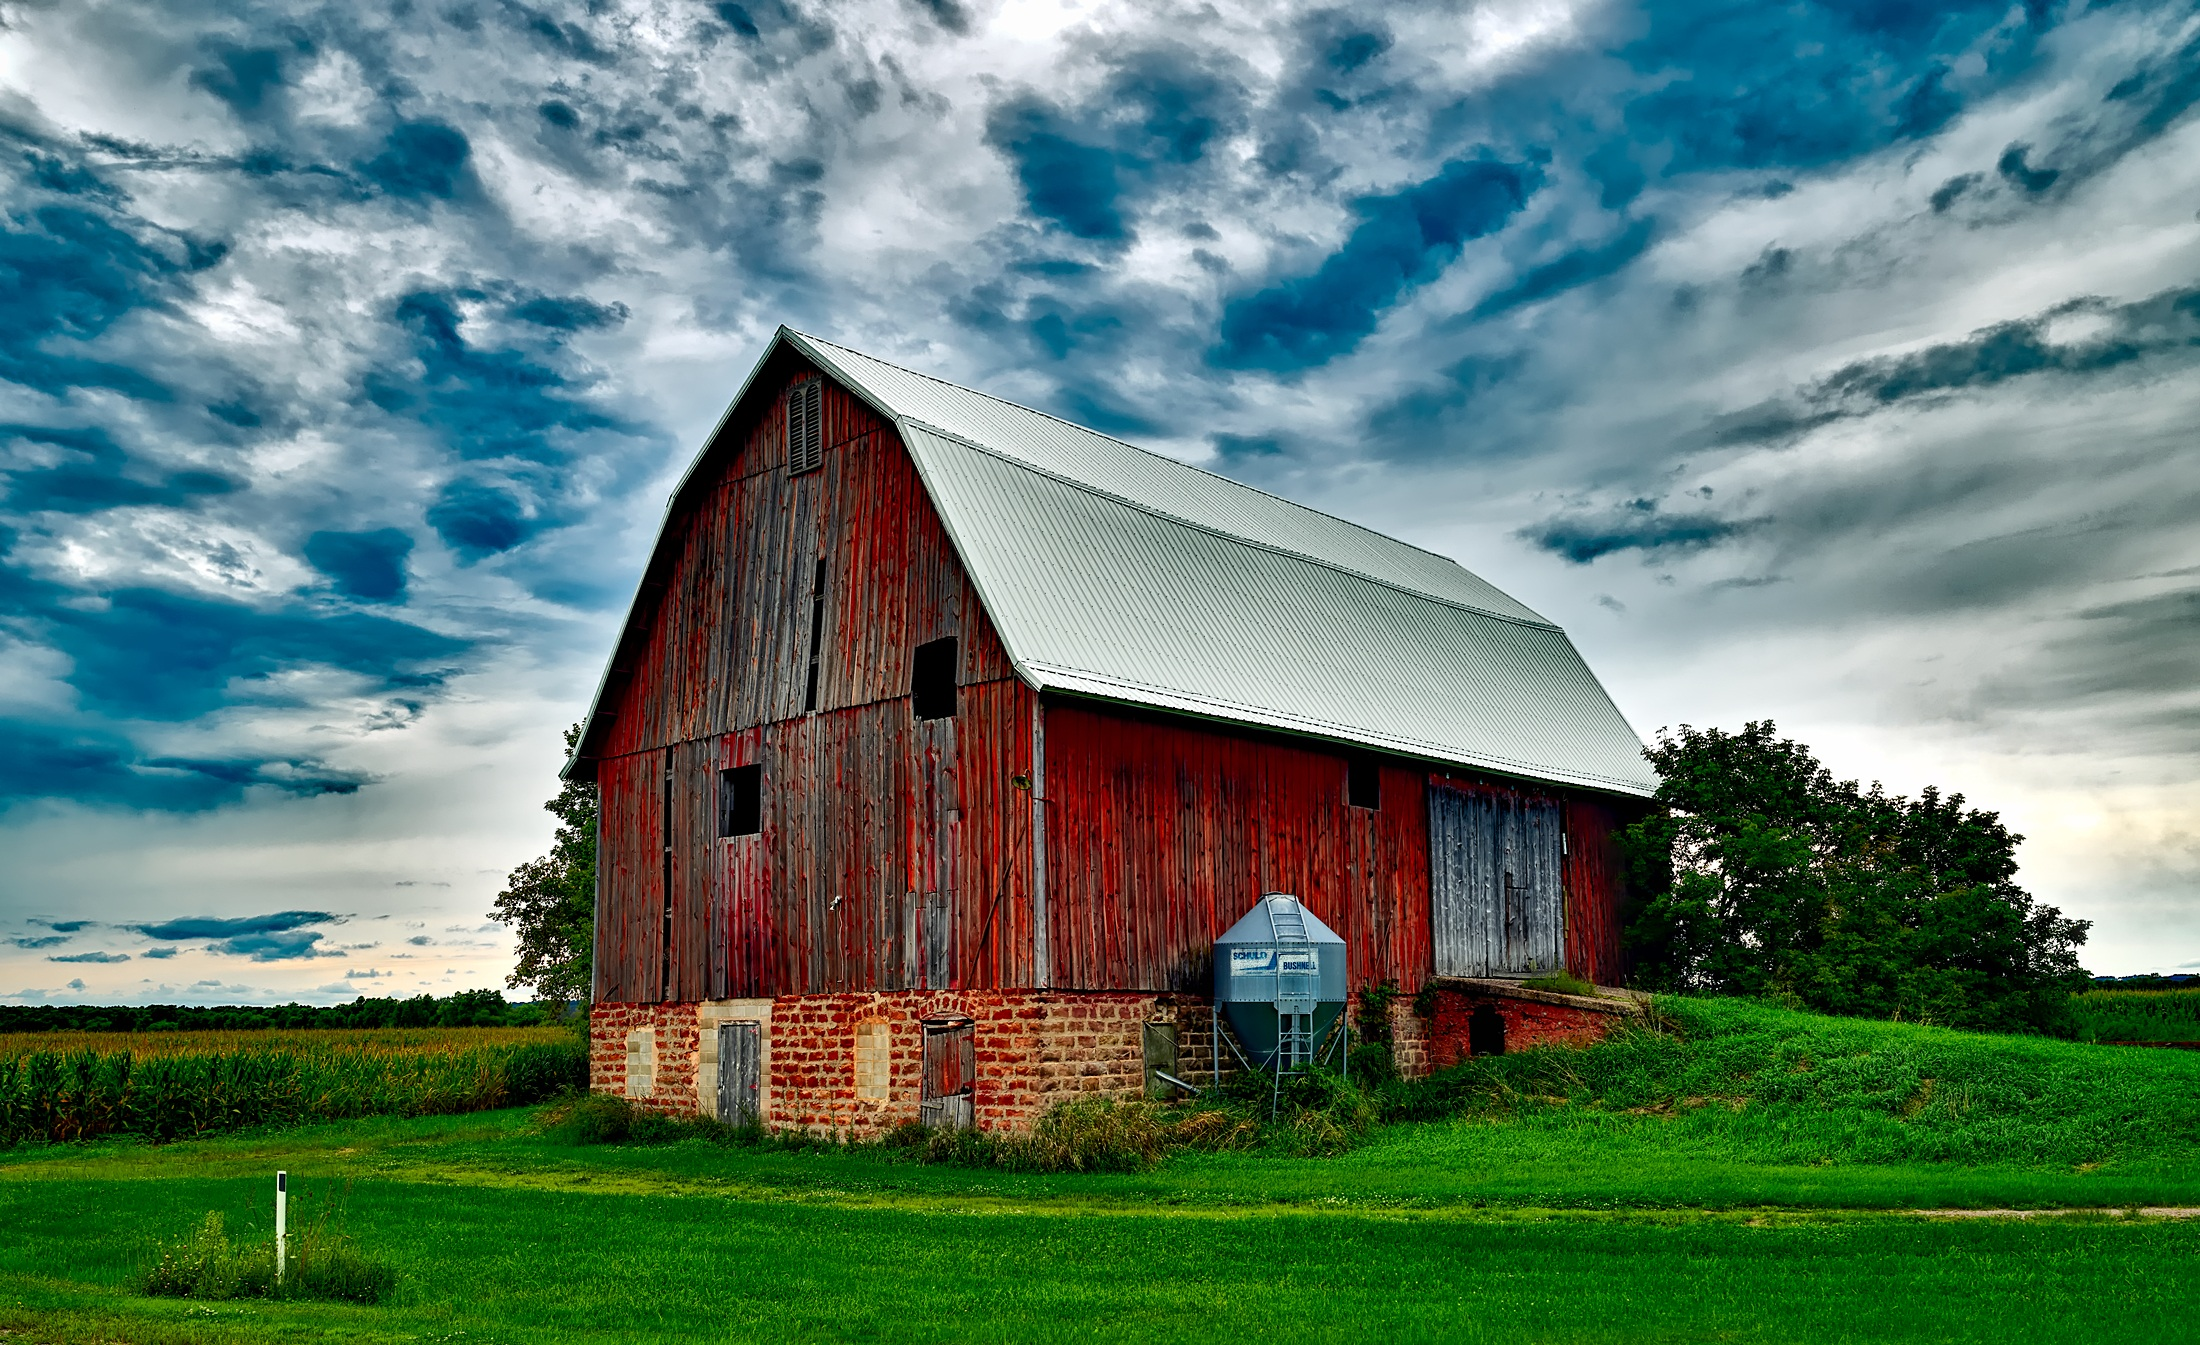 Houses in Farm Against Cloudy Sky  Free Stock Photo